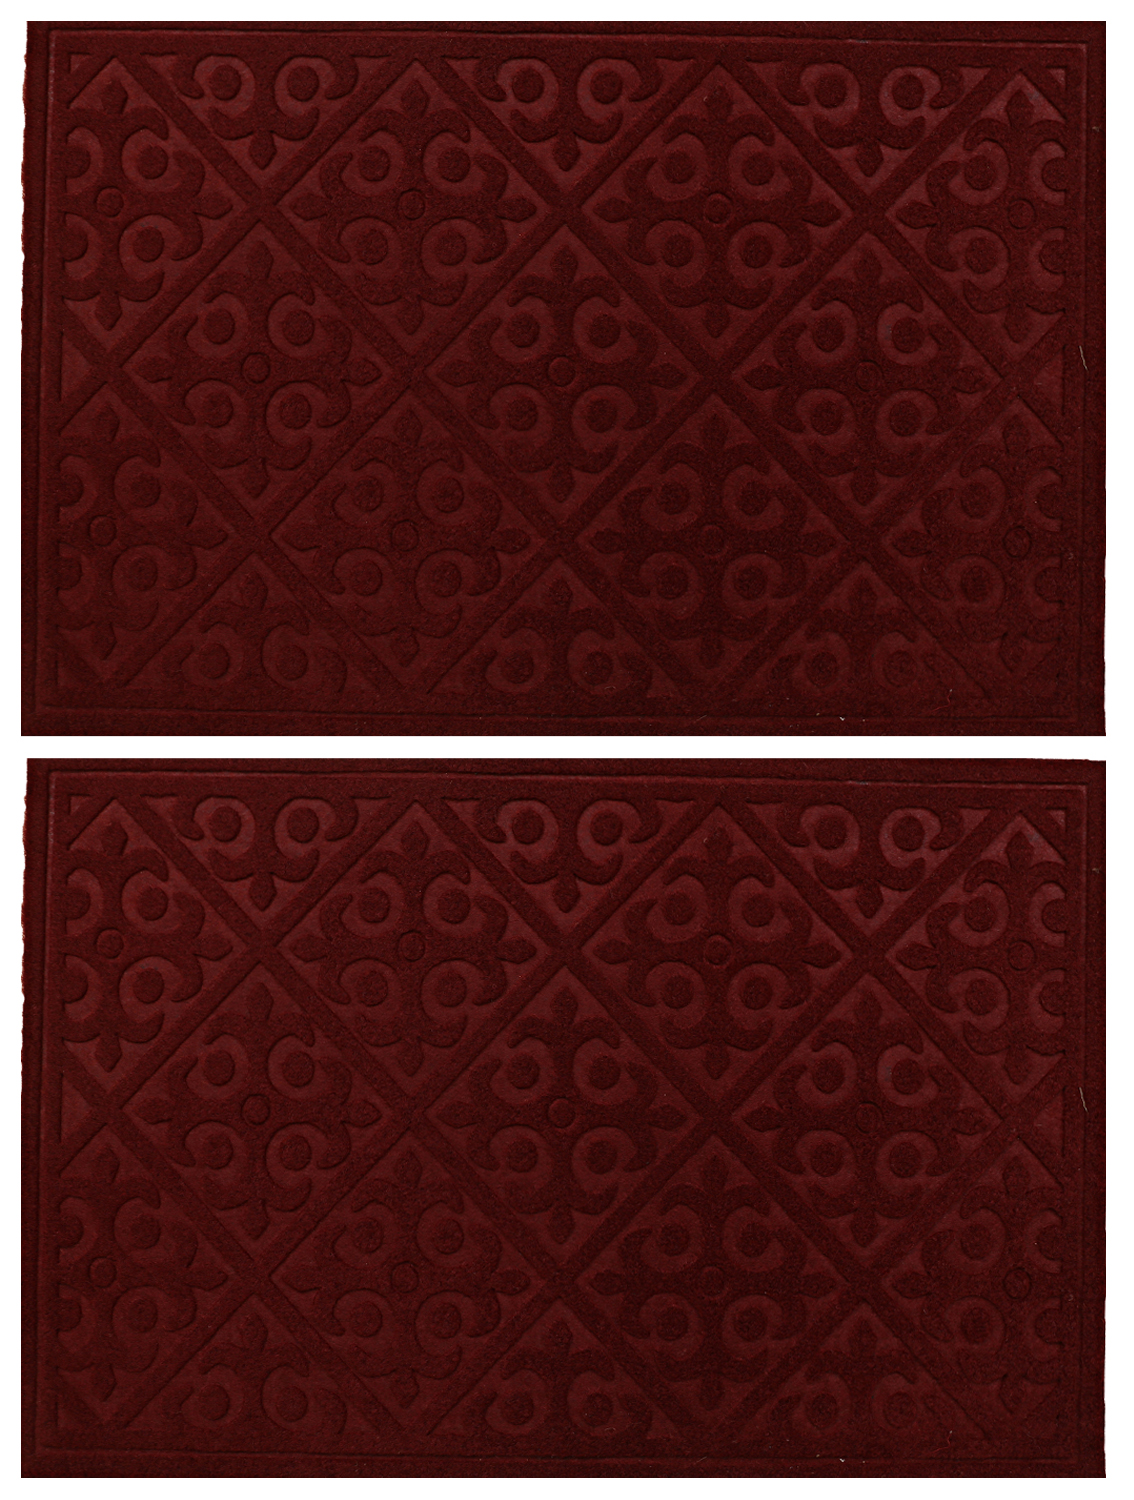 Kuber Industries Microfiber Anti Slip 2 Pieces Bath Mat (Maroon)